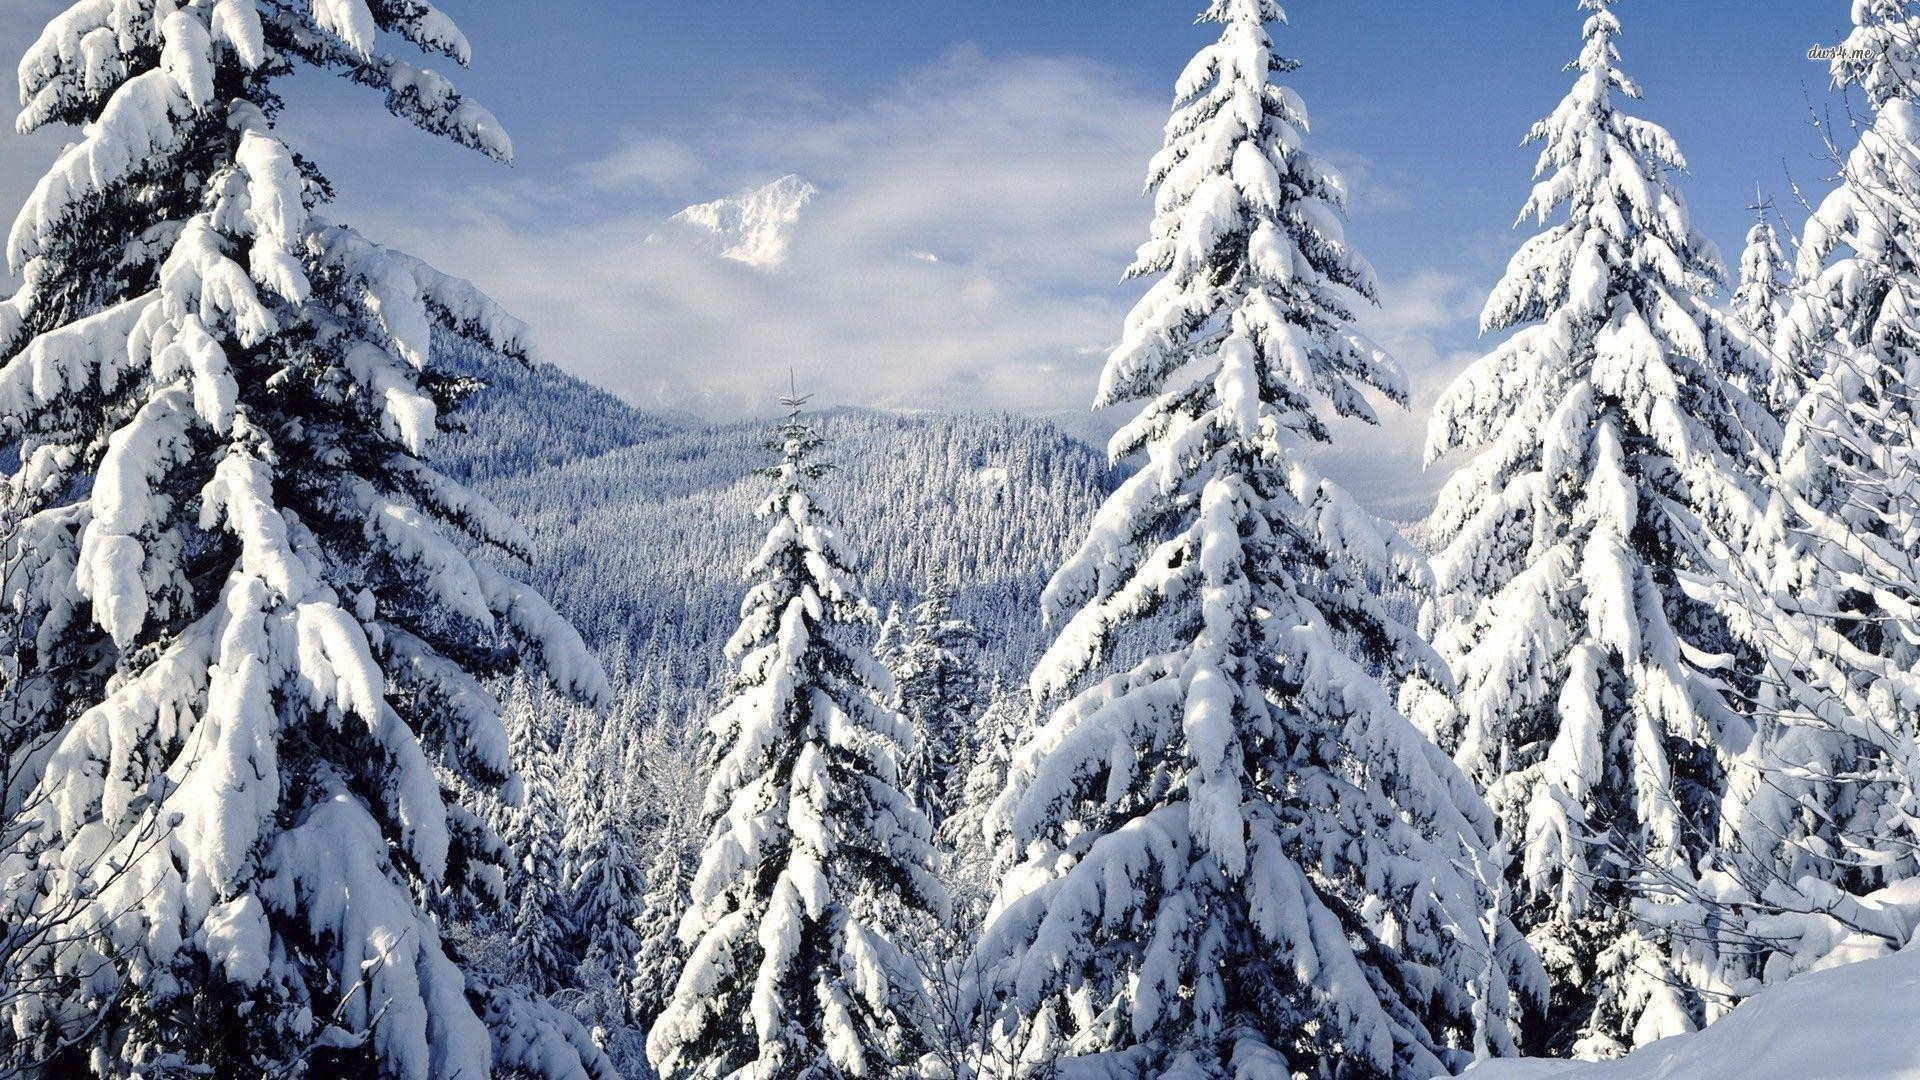 Snowy trees wallpaper 61 images - Snowy wallpaper ...